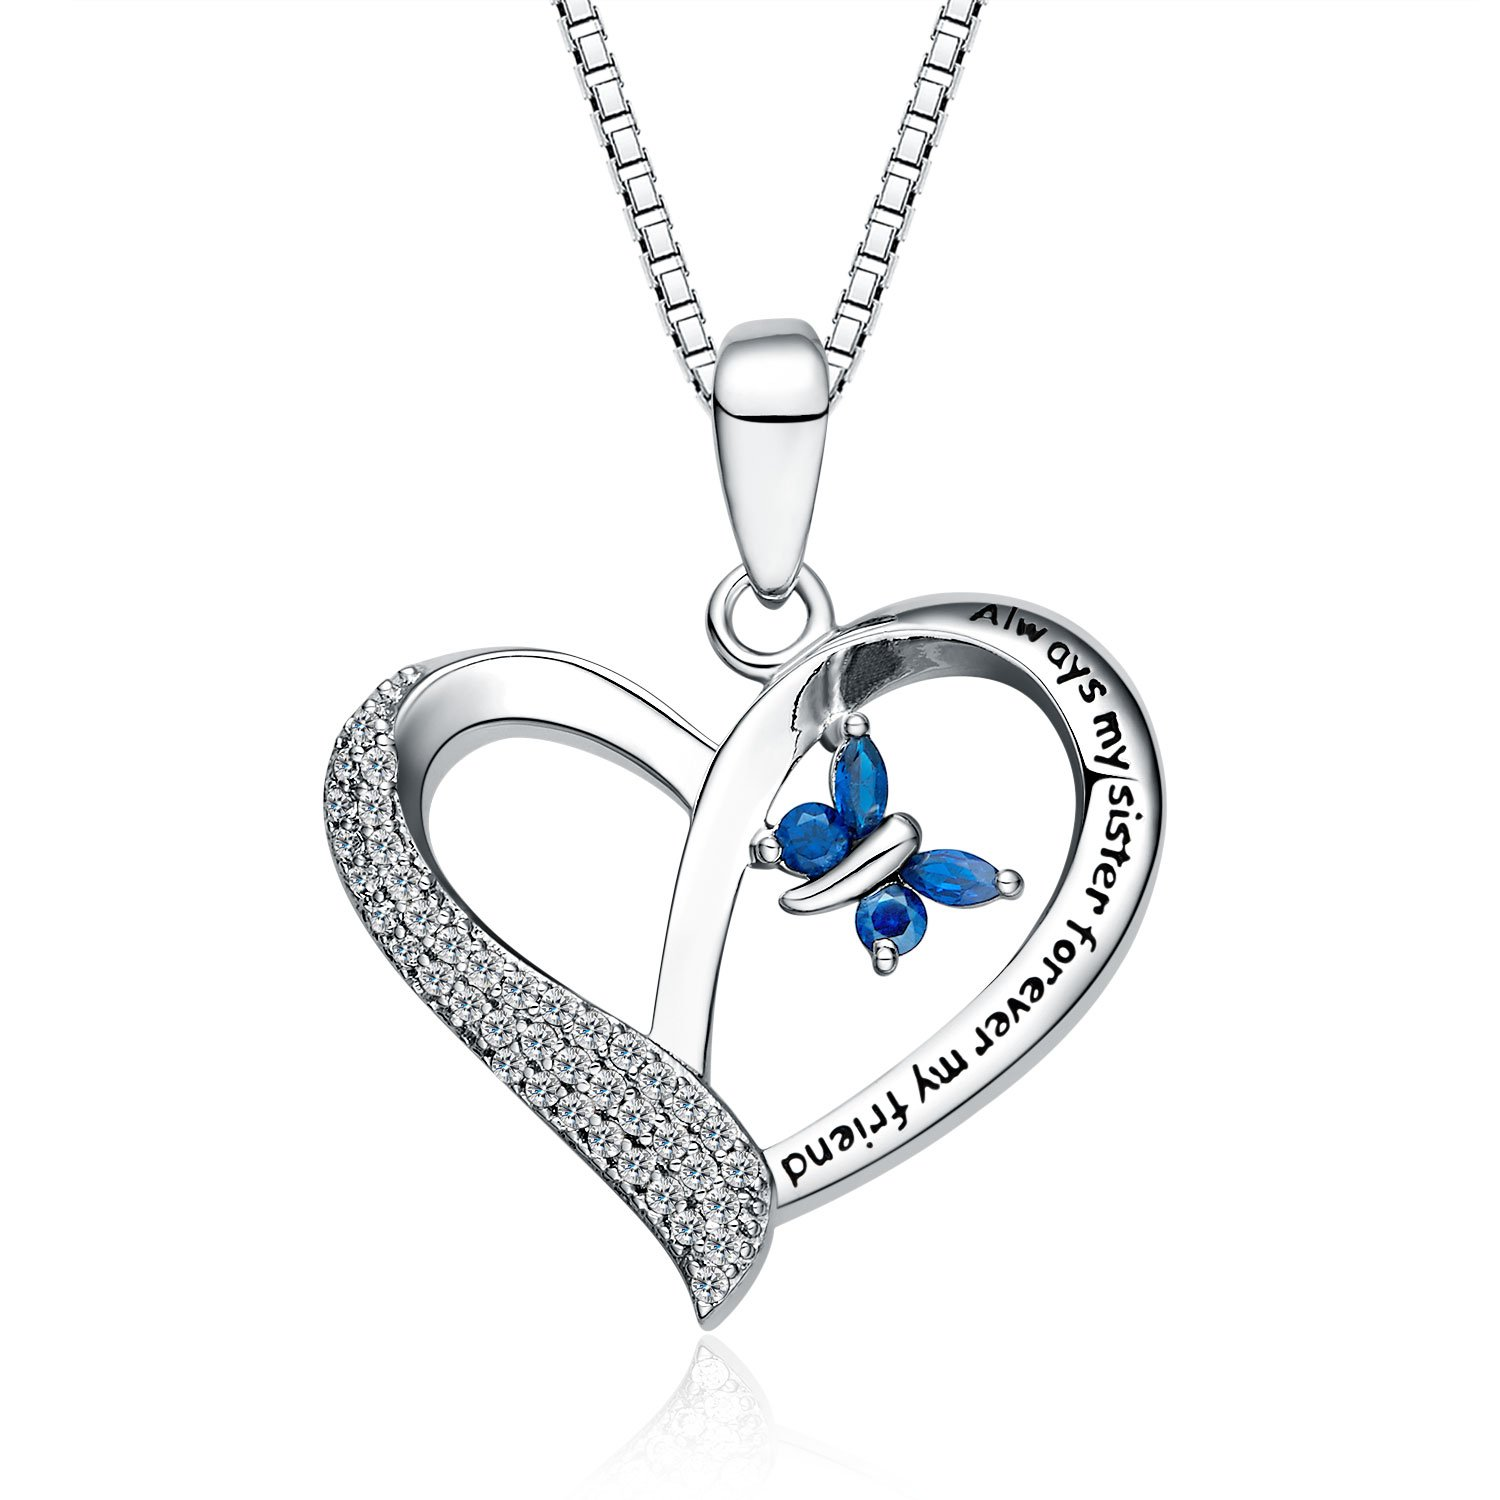 "FANCYCD Always My Sister Forever My Friend"" Love Heart Necklace, 18'', Jewelry for Women & Girls, Birthday Gifts for Sister, Best Friends."